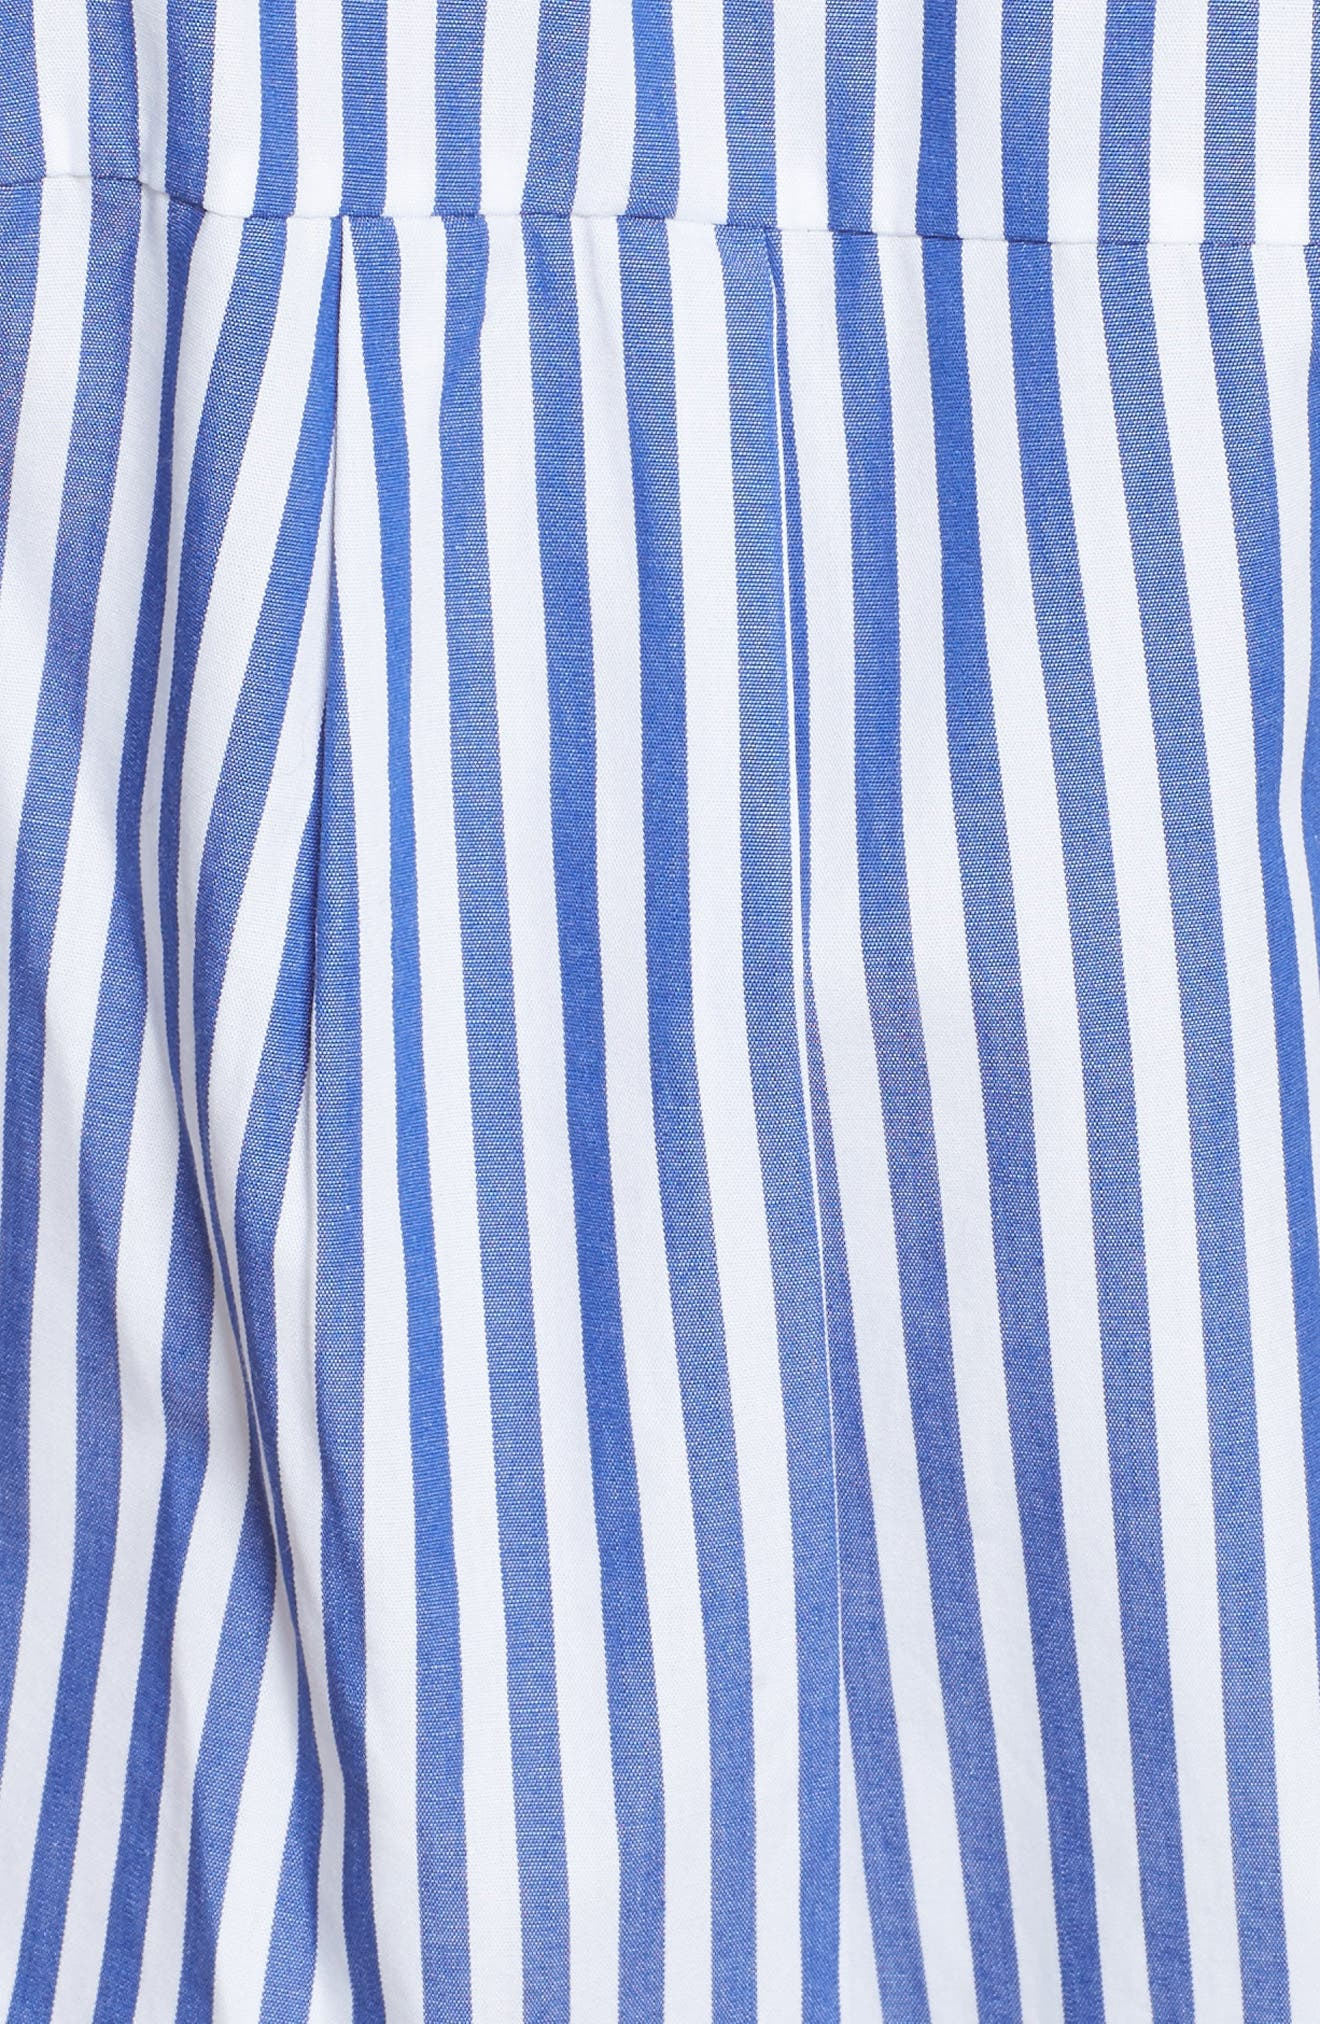 Ruched Stripe Shirtdress,                             Alternate thumbnail 5, color,                             Blue/ White Stripe